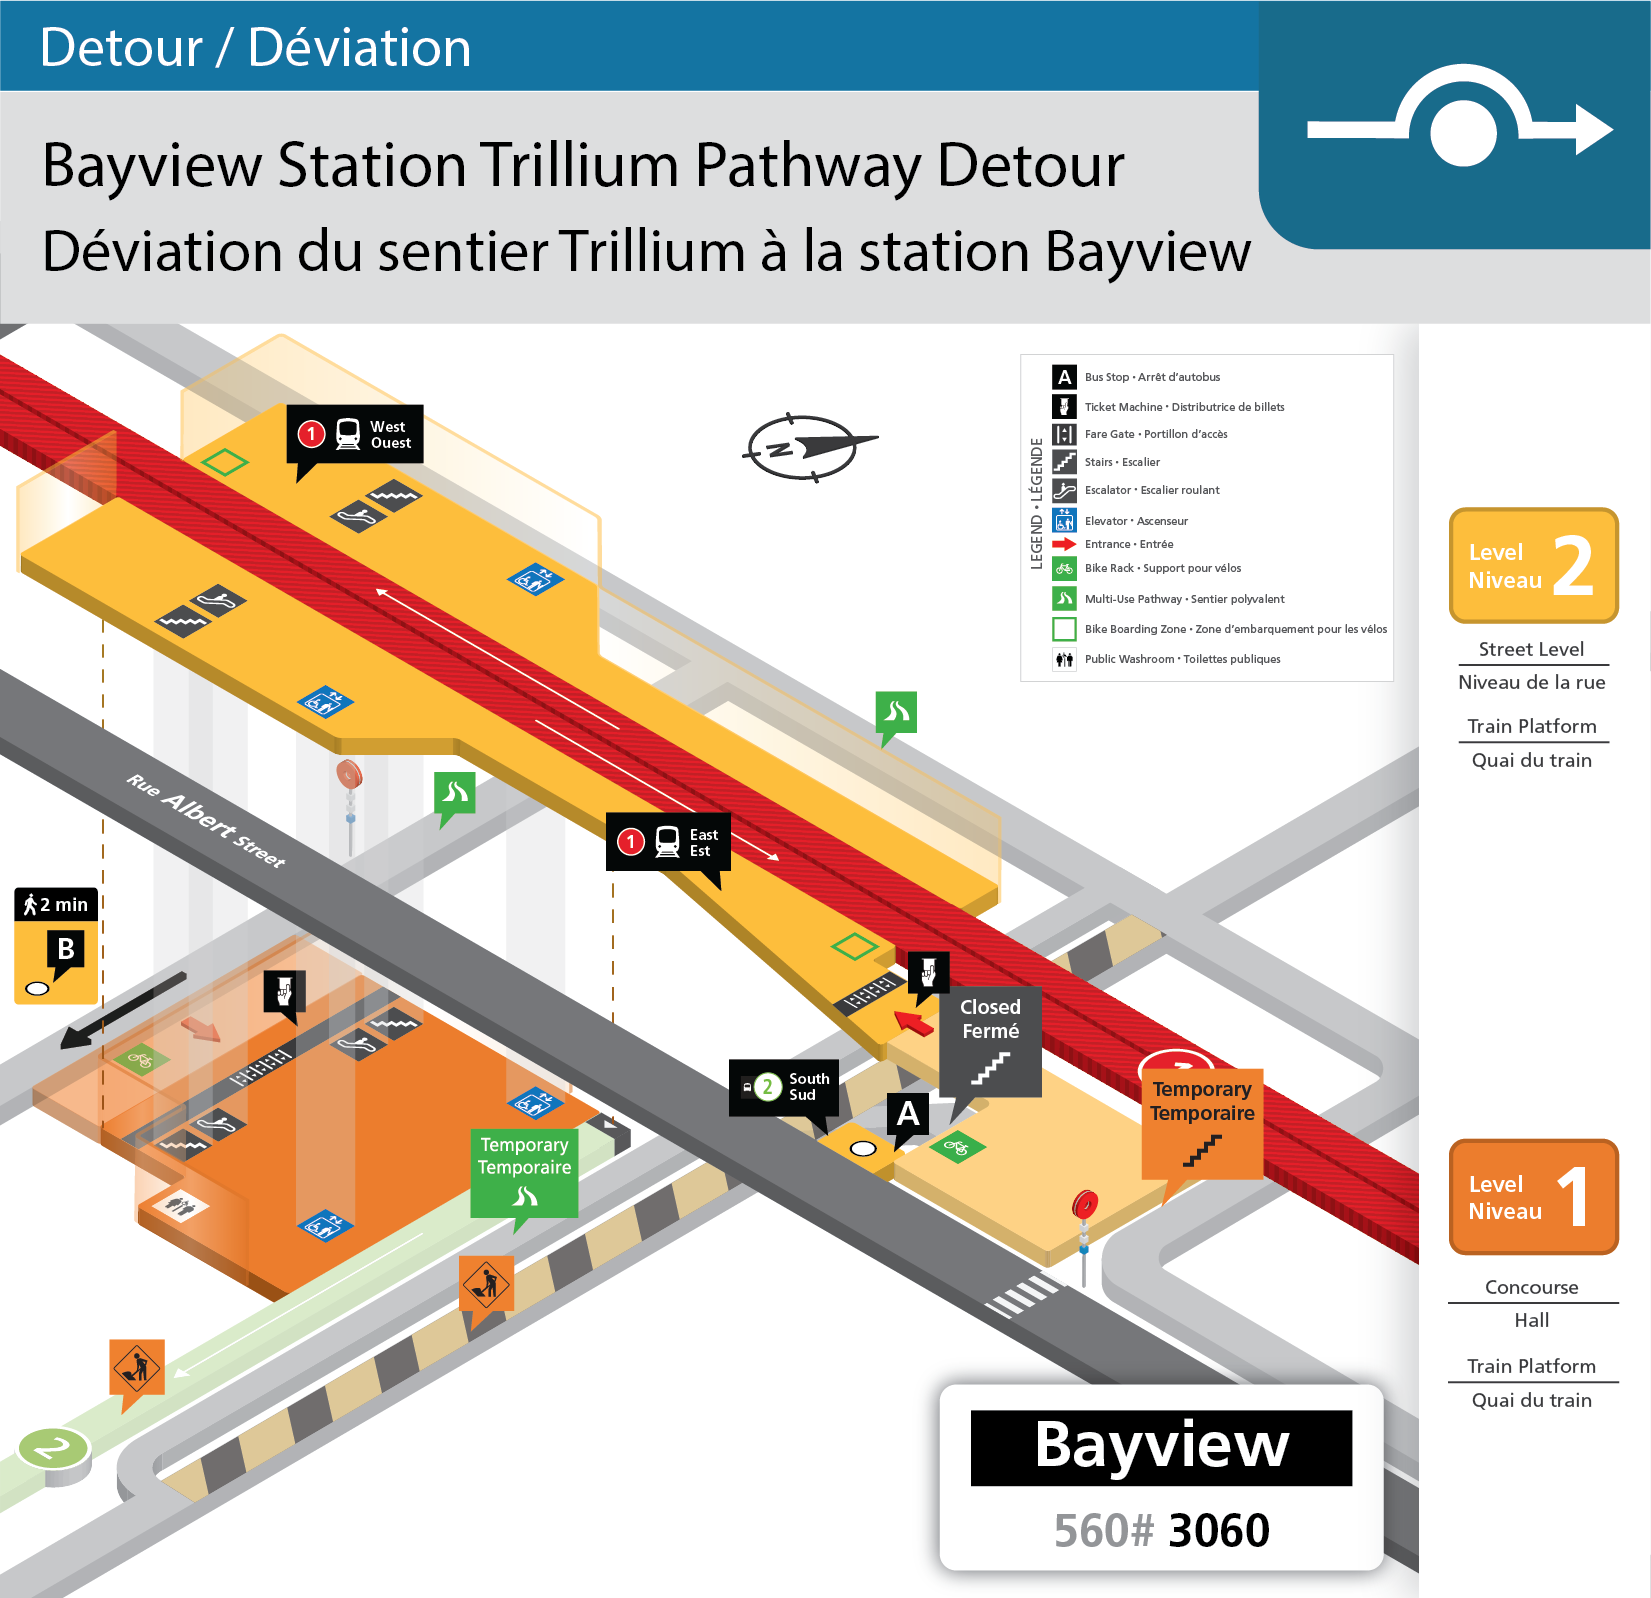 Map showing the slight detour of the Trillium Pathway at Bayview Station, and the temporary paved pathway that will be available to customers.